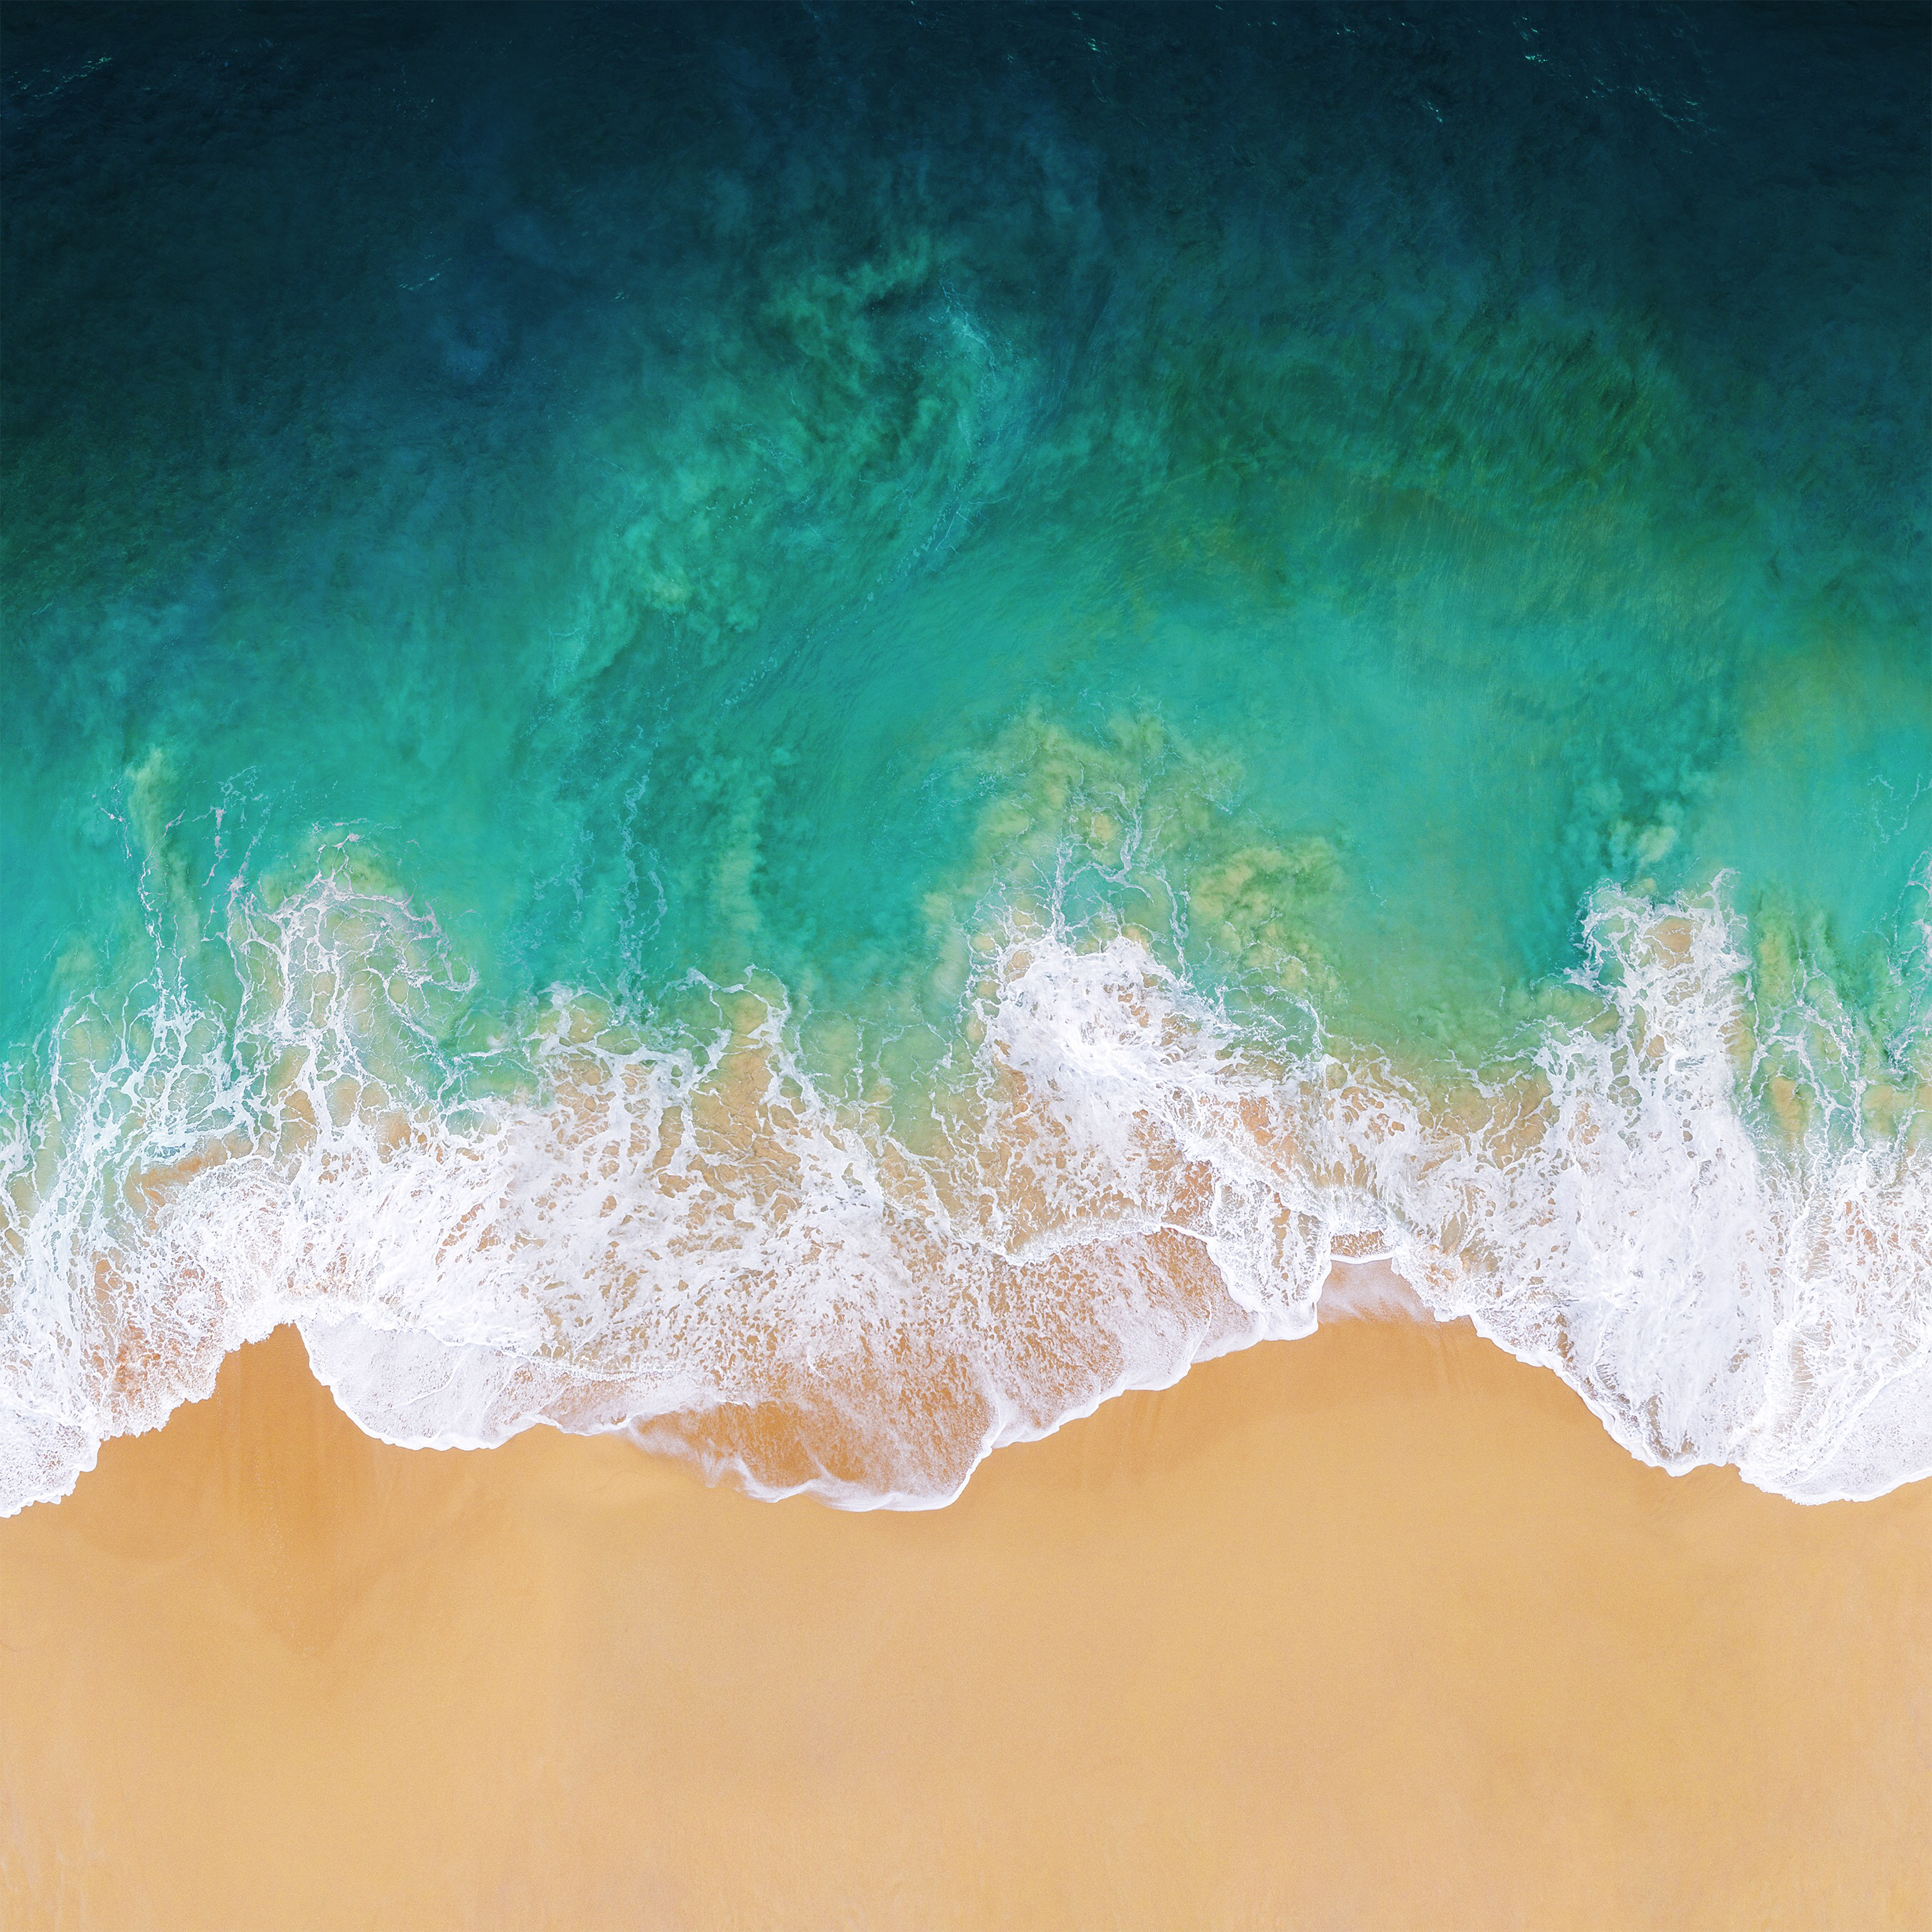 Best Iphone 11 Wallpaper: Top Free IOS 11 Backgrounds